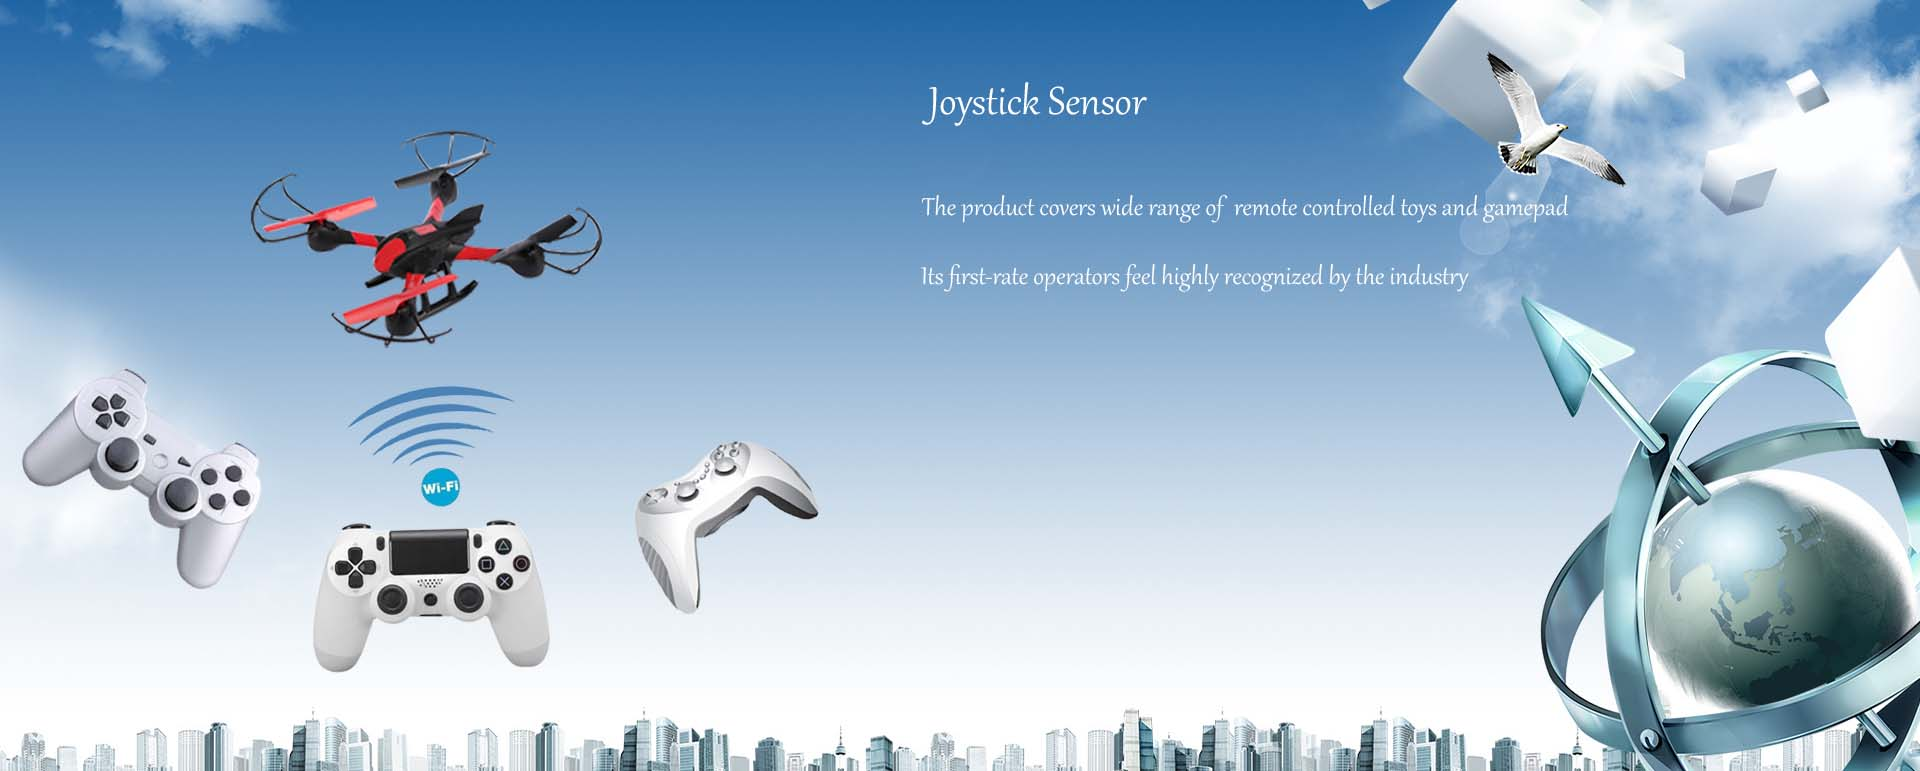 joystick sensor[0000-00-00 00:00:00]&#13The product covers wide range of  remote controlled toys and gamepad